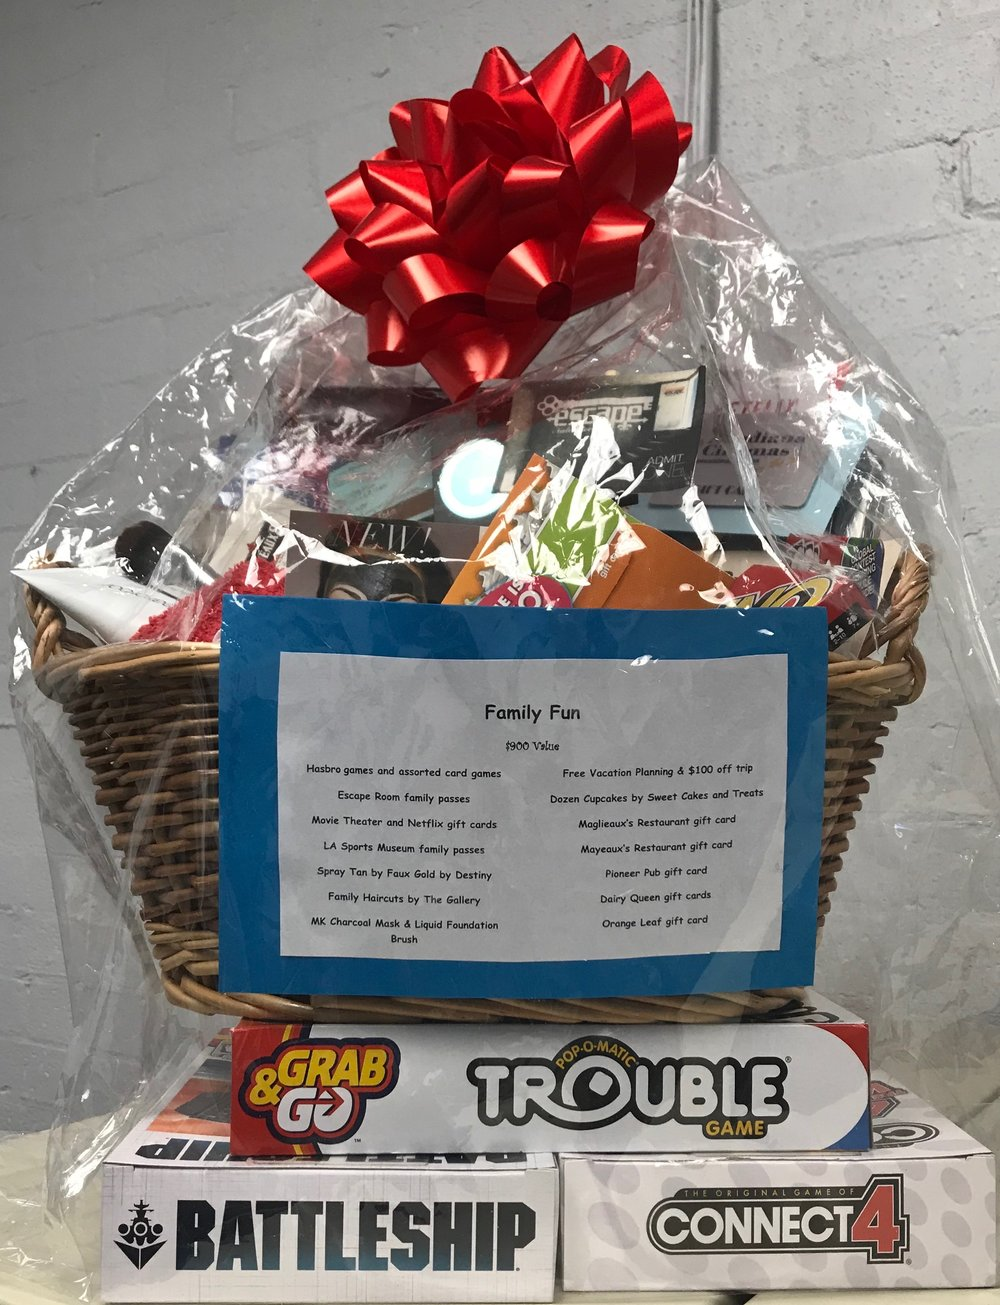 Family Fun Basket - Hasbro games and assorted card games, Escape Room family passes, Movie Theater and Netflix gift cards, LA Sports Museum family passes, Spray Tan by Faux Gold by Destiny, Family Haircuts by The Gallery, MK Charcoal Mask & Liquid Foundation Brush, Free vacation planning and $100 off trip, One dozen cupcakes by Sweet Cakes and Treats, and gift cards to: Maglieaux's Restaurant, Mayeaux's Restaurant, Pioneer Pub, Dairy Queen, and Orange Leaf.